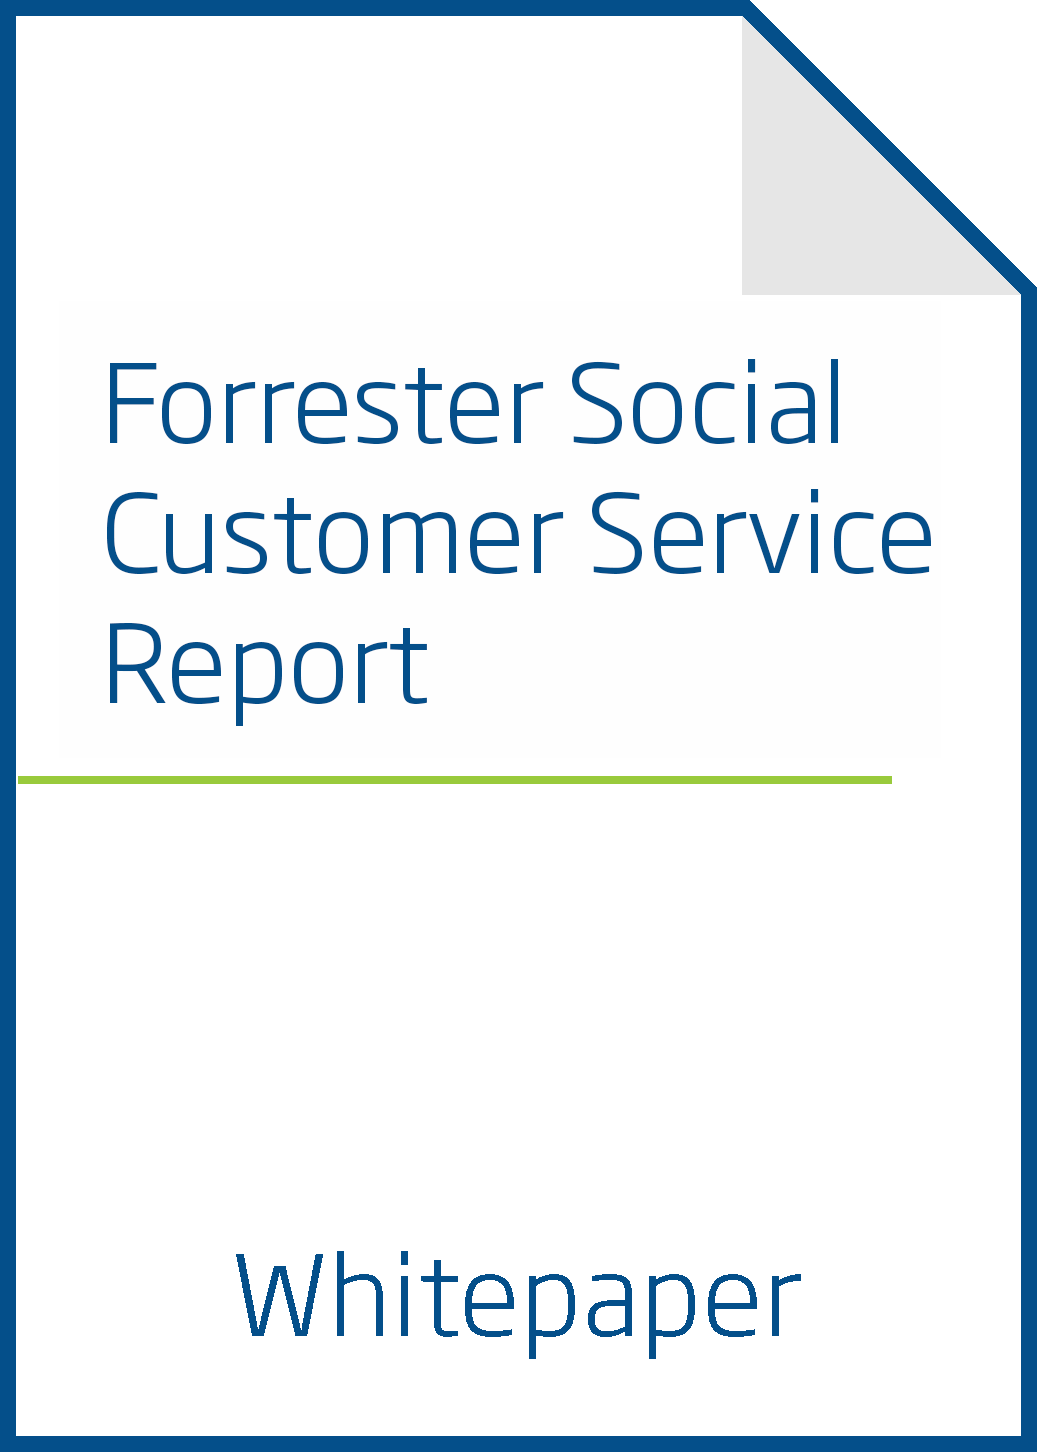 Forrester_Report.png